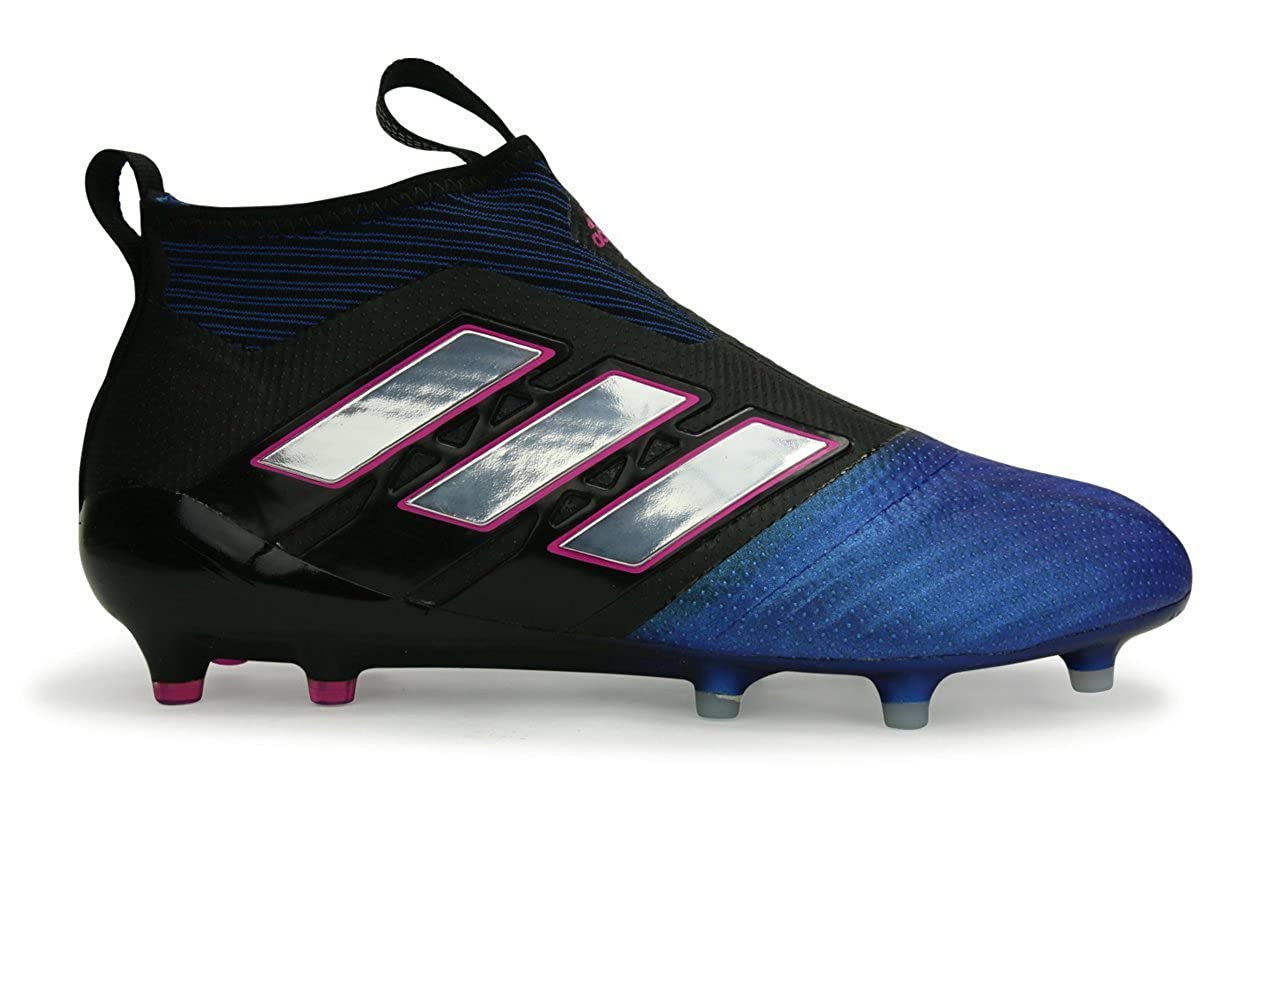 outlet store 0594c 3fbd2 ... low price amazon adidas mens ace 17 purecontrol fg core black white  blue soccer shoes 8.5